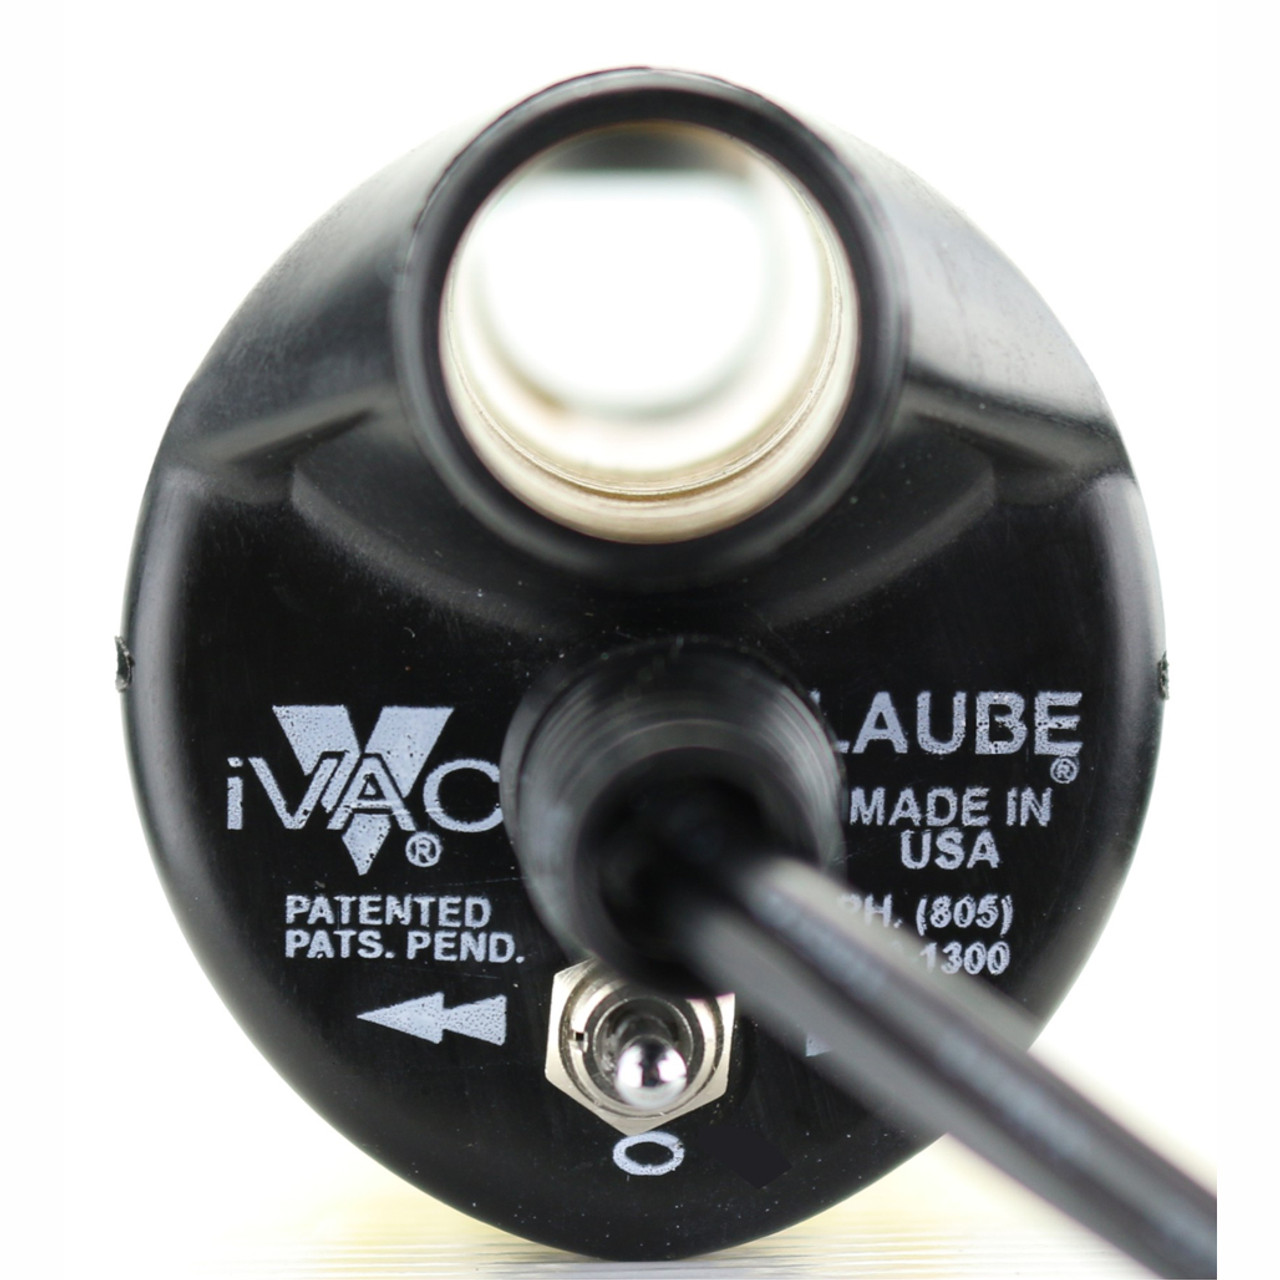 laube ivac 871 cowboy handpiece back switch view